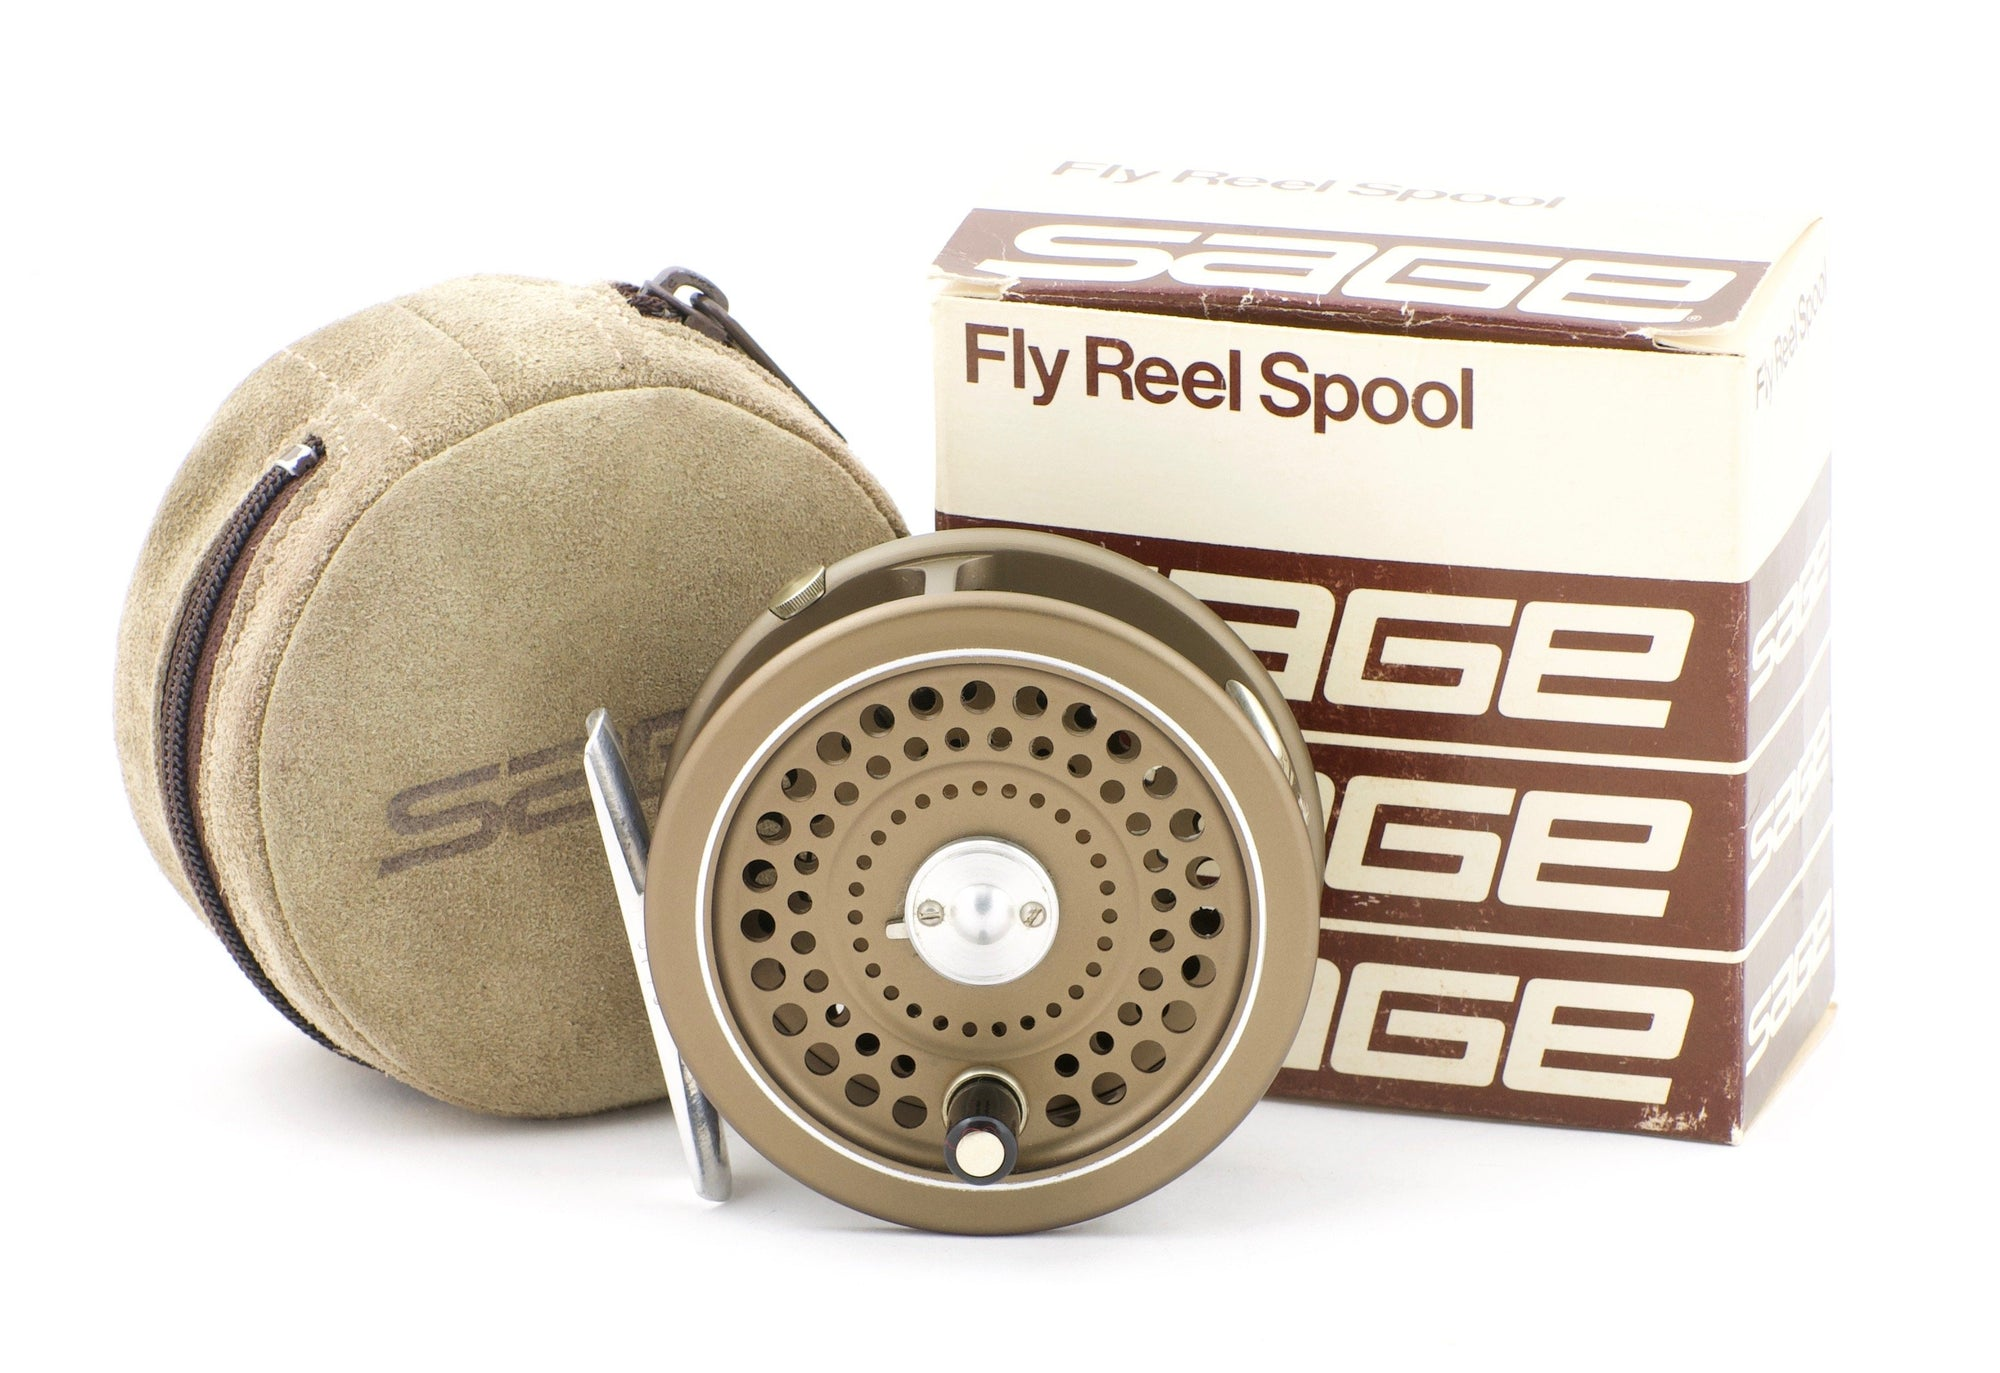 Sage 504L Fly Reel and Spare Spool (made by Hardy's)